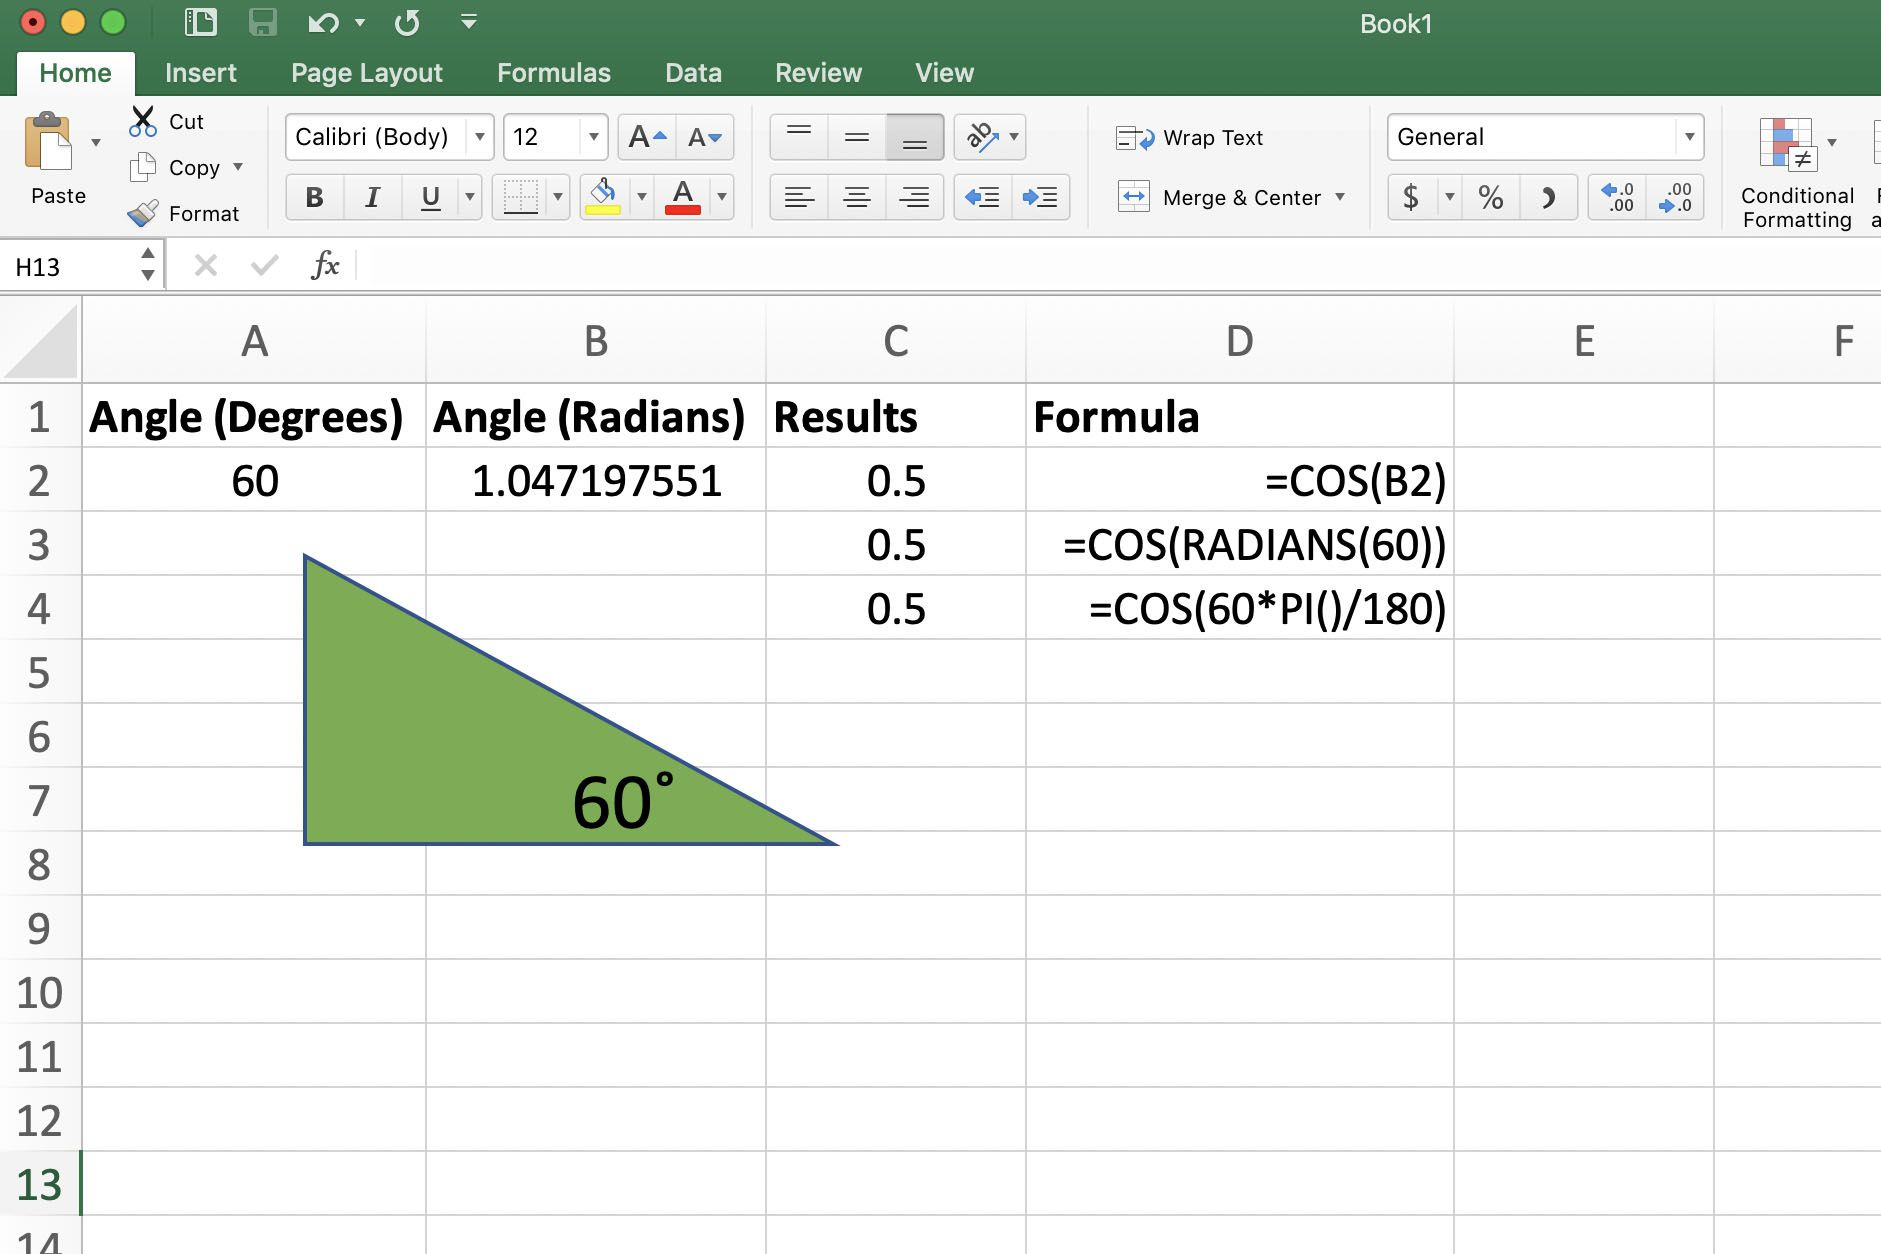 How To Find The Cosine Of An Angle With Excels Cos Function